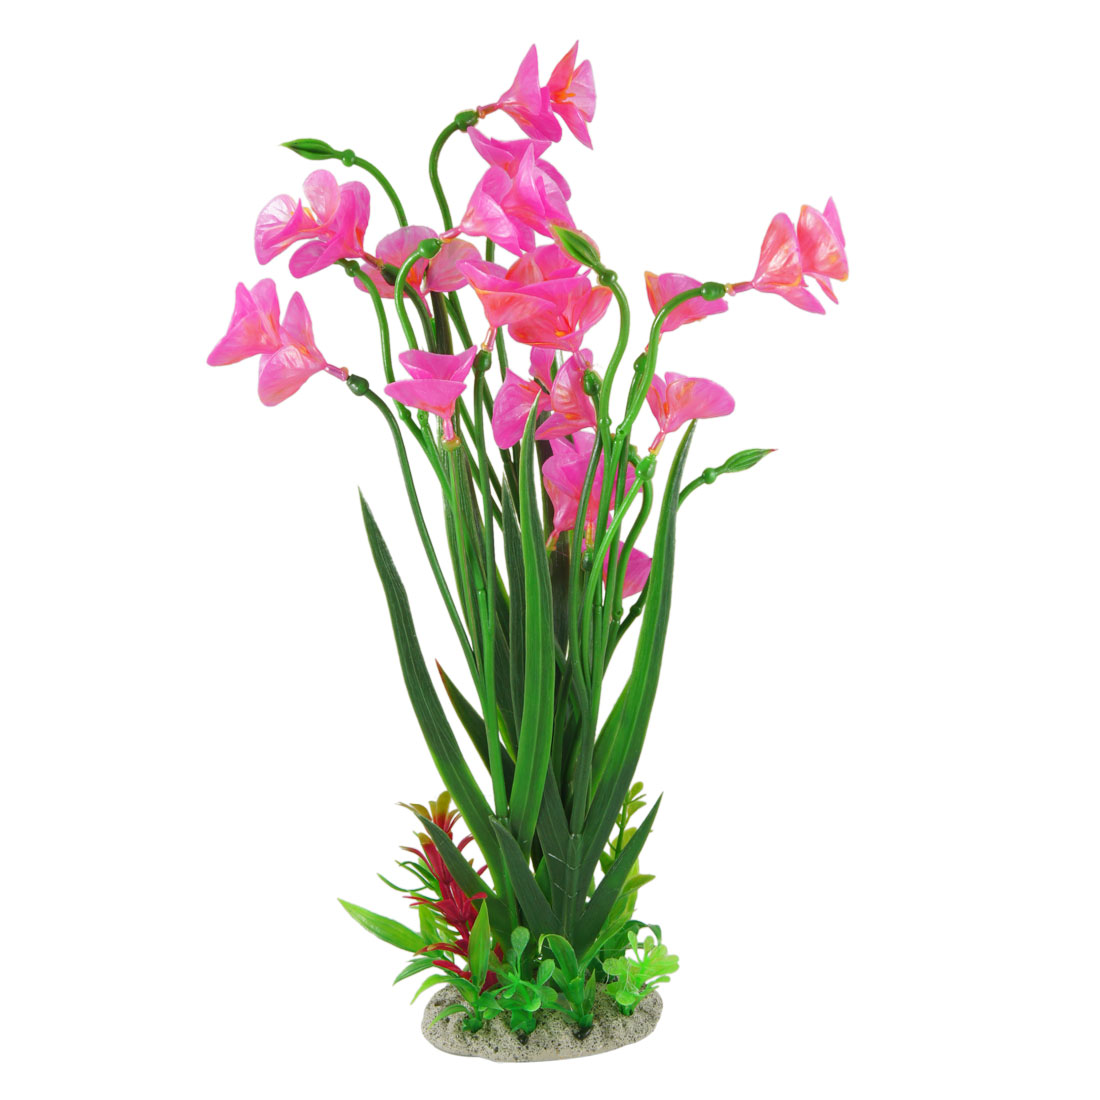 "15.4"" Height Emulational Fuchsia Flower Aquatic Green Plants for Fish Tank"